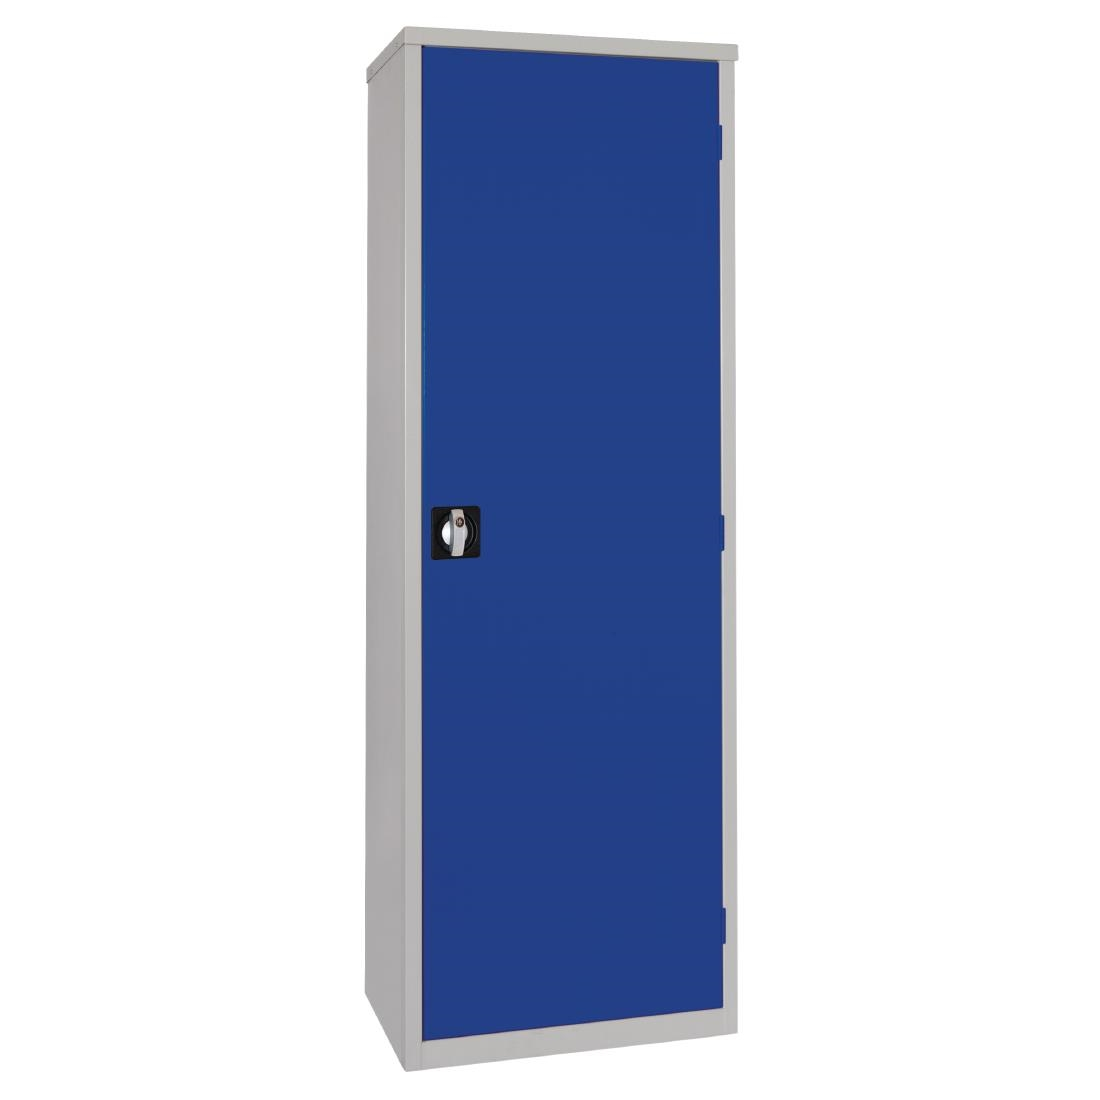 Image of Clothing And Equipment Locker Blue 610mm